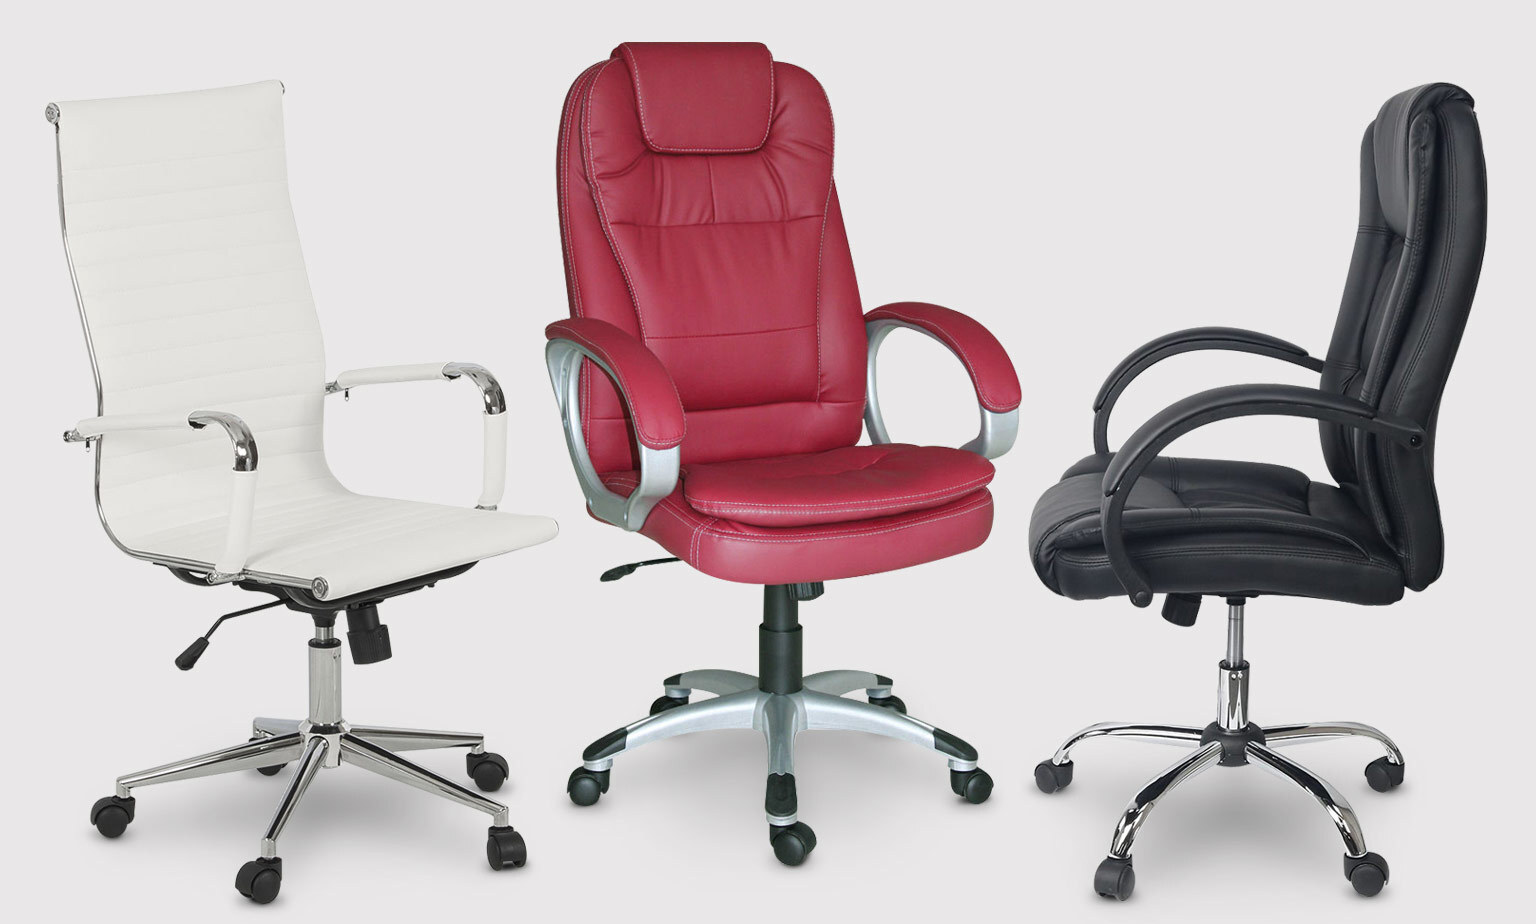 Free Shipping on Chairs for Every Office